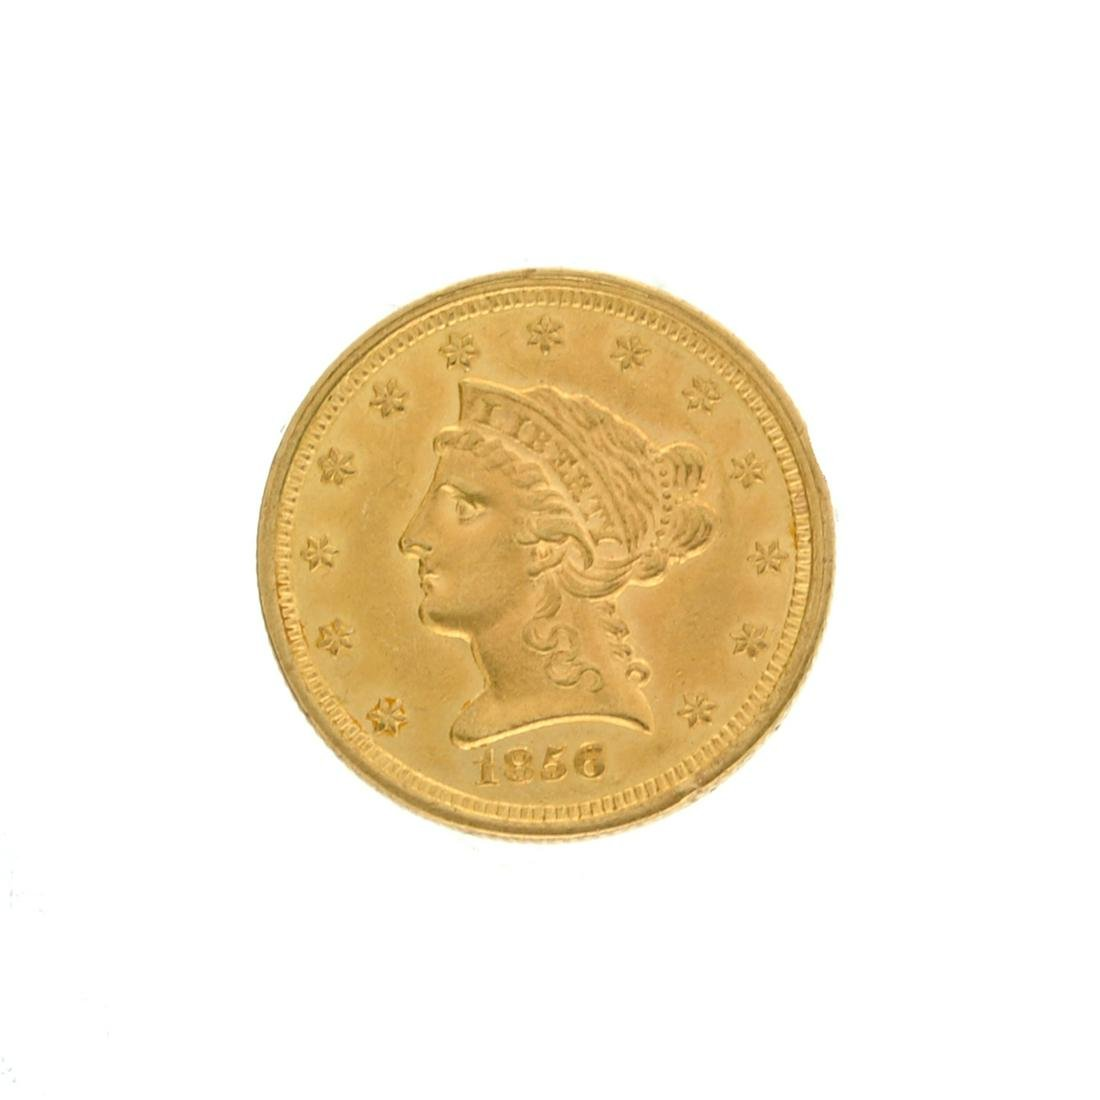 Extremely Rare 1856 $2.50 U.S. Liberty Head Gold Coin